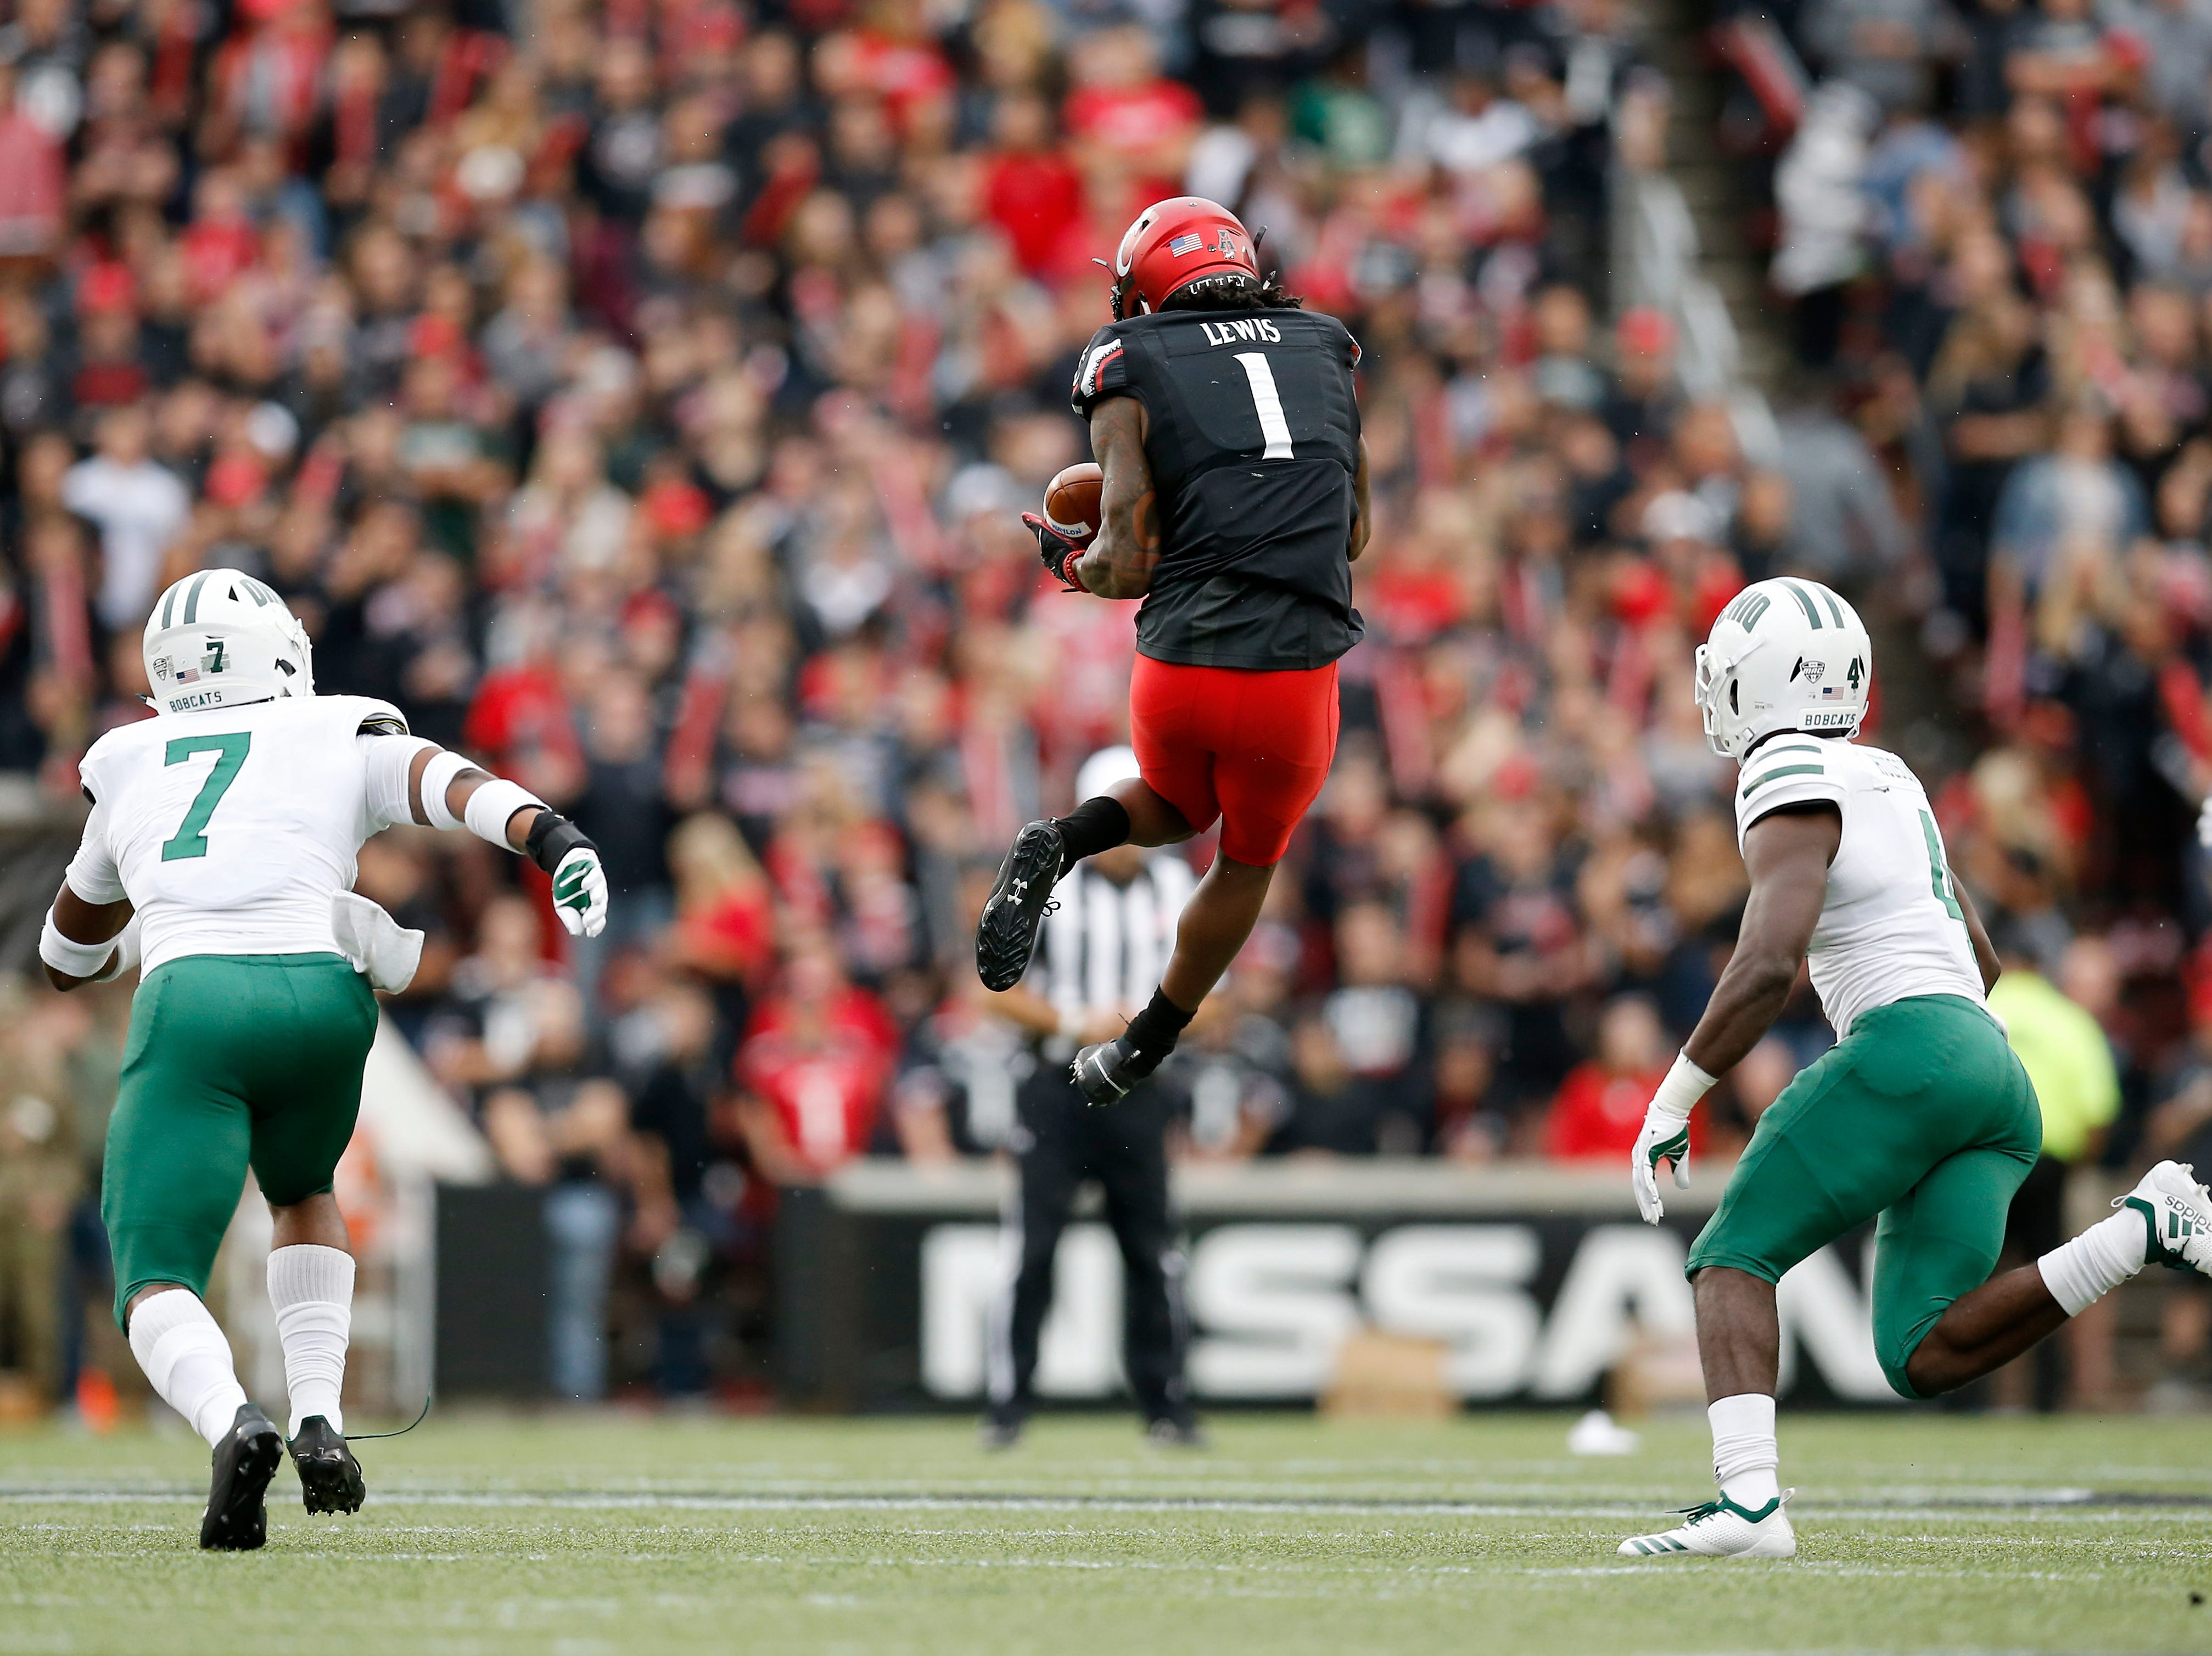 Cincinnati Bearcats wide receiver Alec Pierce (12) makes a leaping catch in the second quarter of the NCAA football game between the Cincinnati Bearcats and the Ohio Bobcats at Nippert Stadium on the University of Cincinnati campus in Cincinnati on Saturday, Sept. 22, 2018. The Bobcats led 24-7 at halftime.